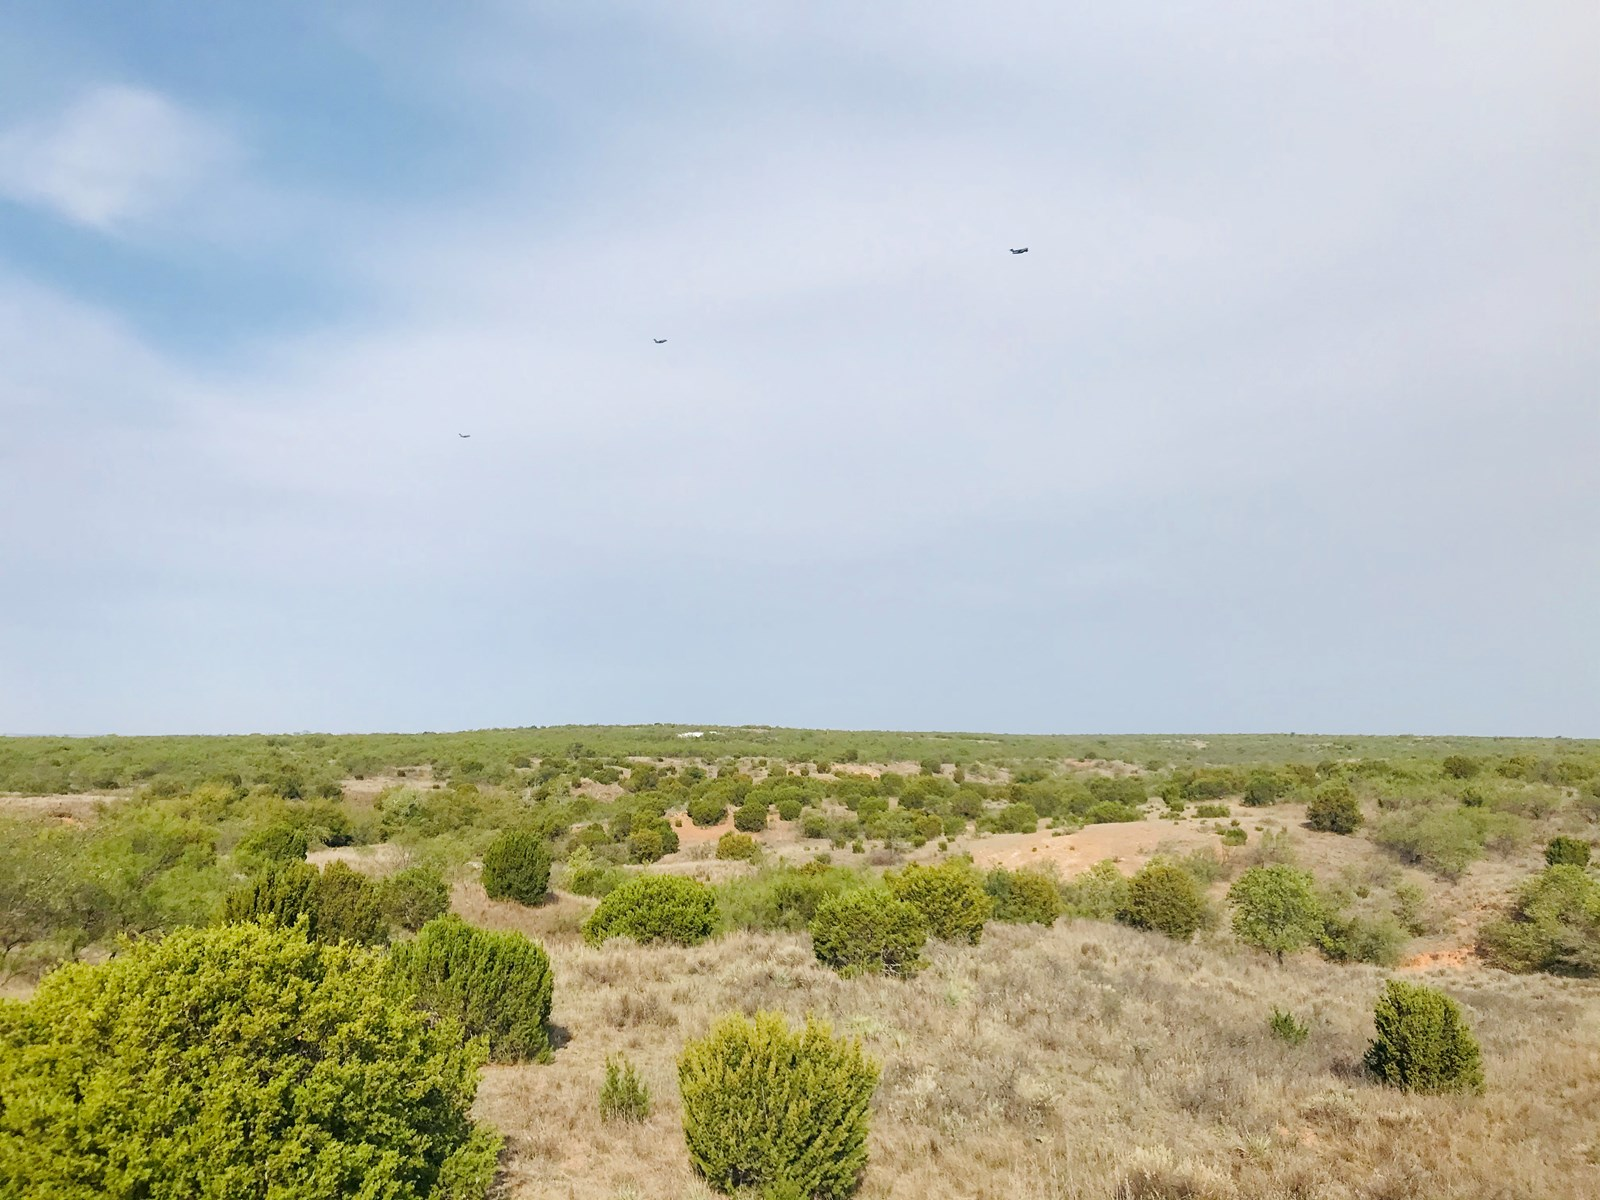 Land for sale in Erick, OK